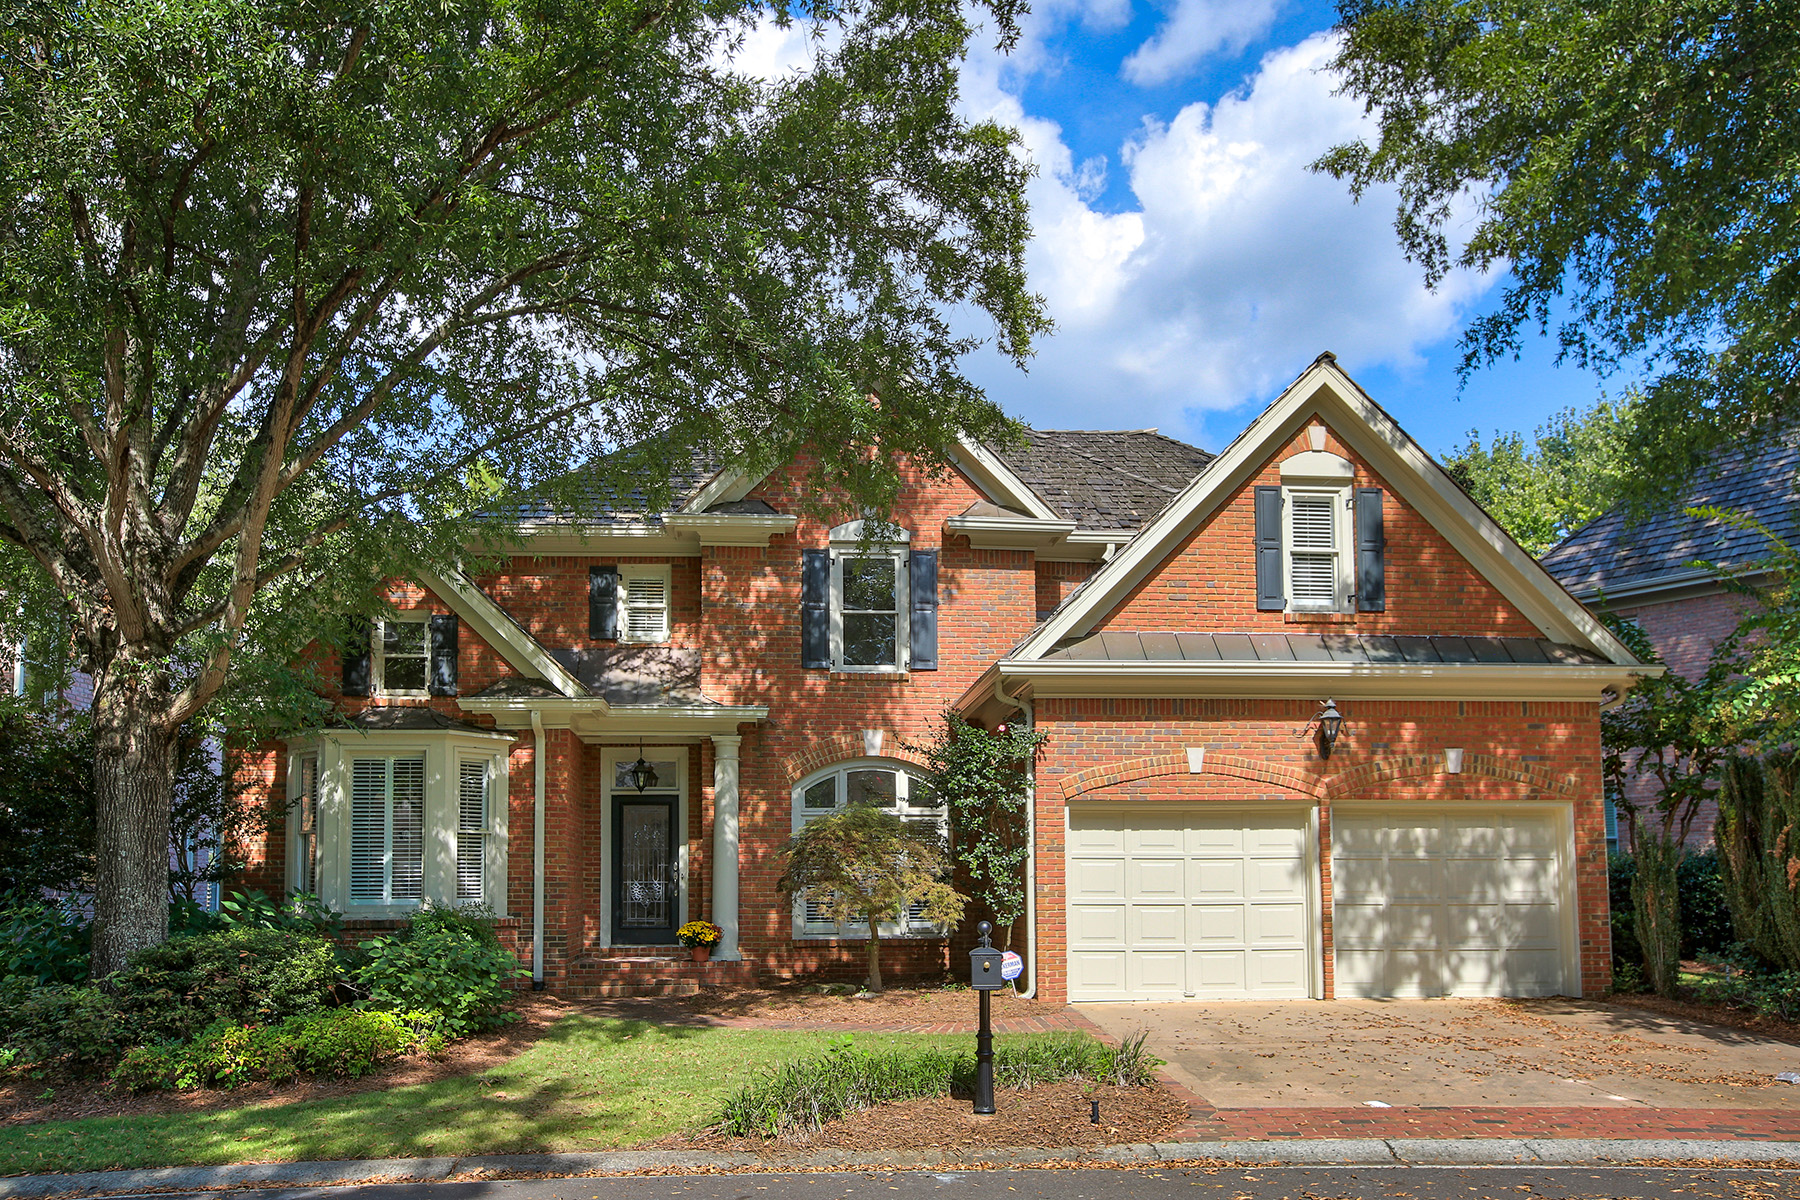 Moradia para Arrendamento às Waterfront Cluster Home in Golf Community 6900 Brookside Drive Roswell, Geórgia 30076 Estados Unidos